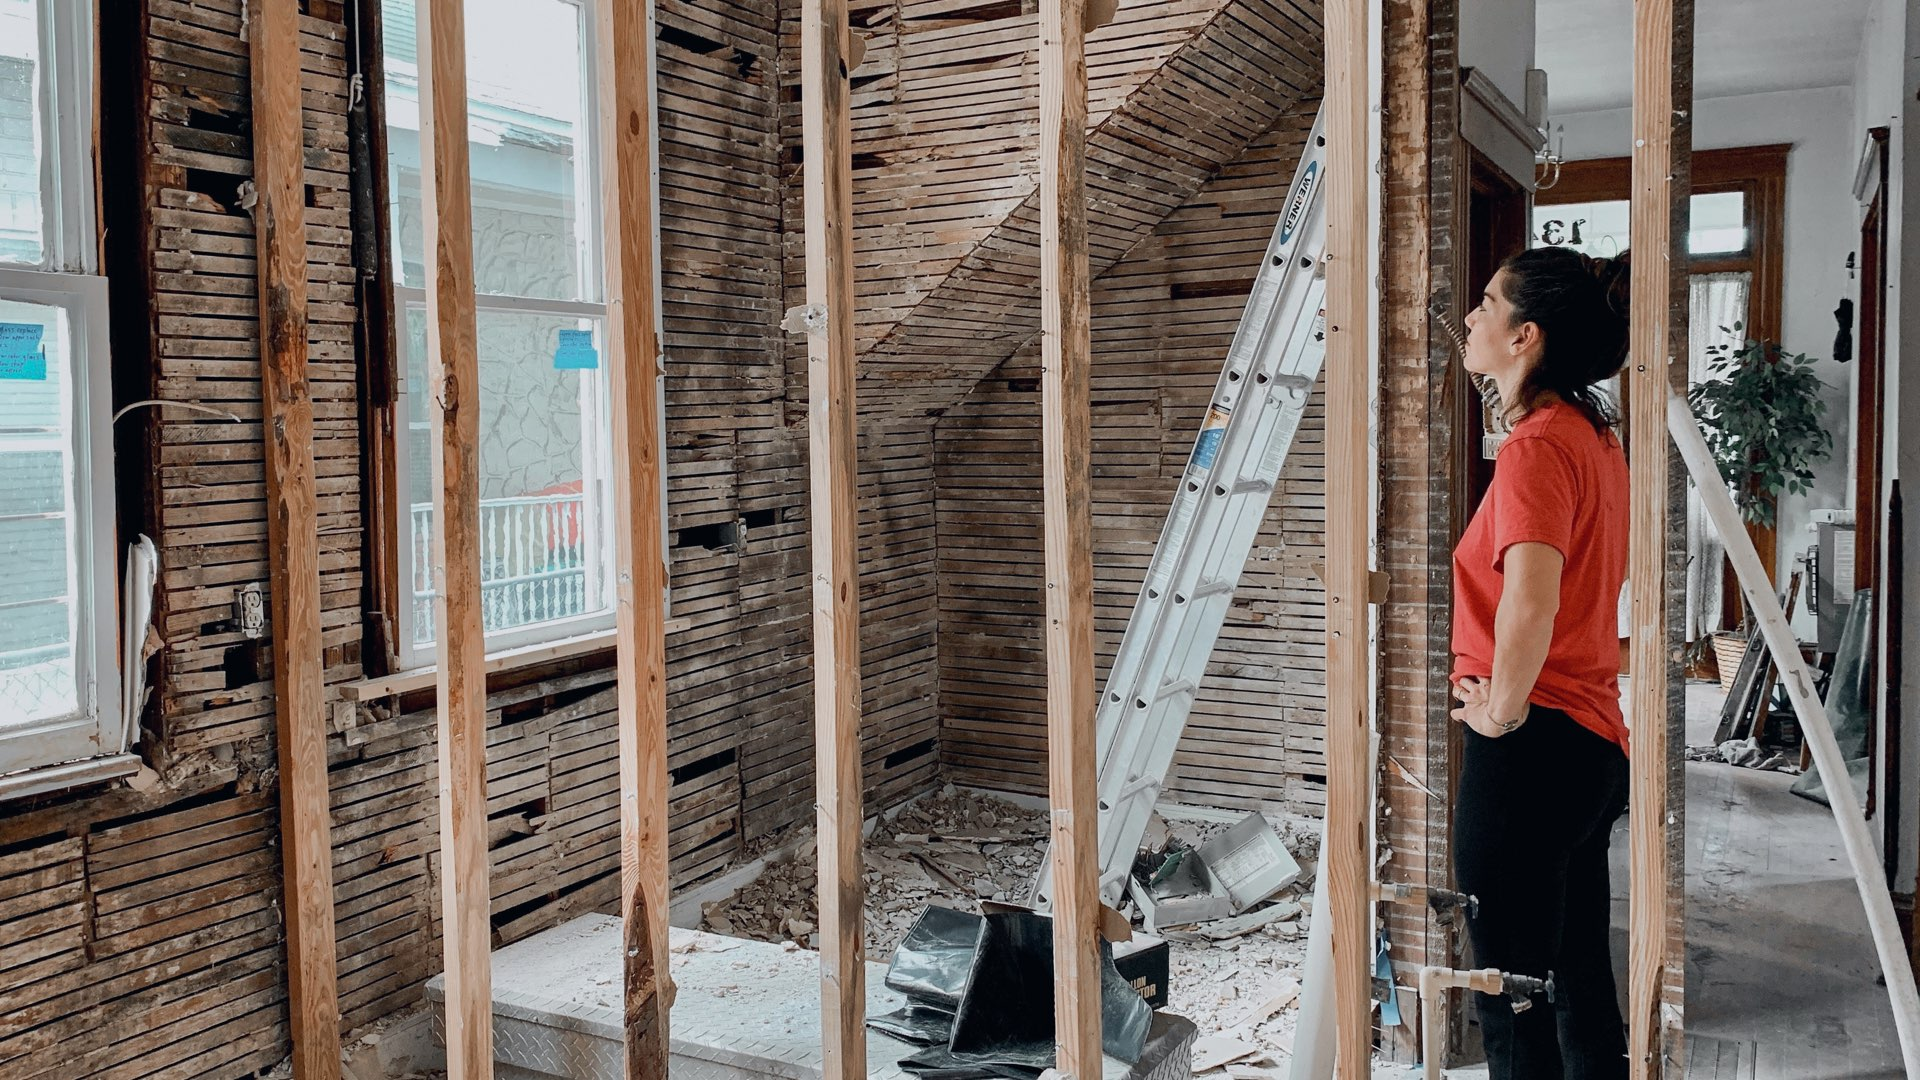 A young woman in a red shirt renovating her home